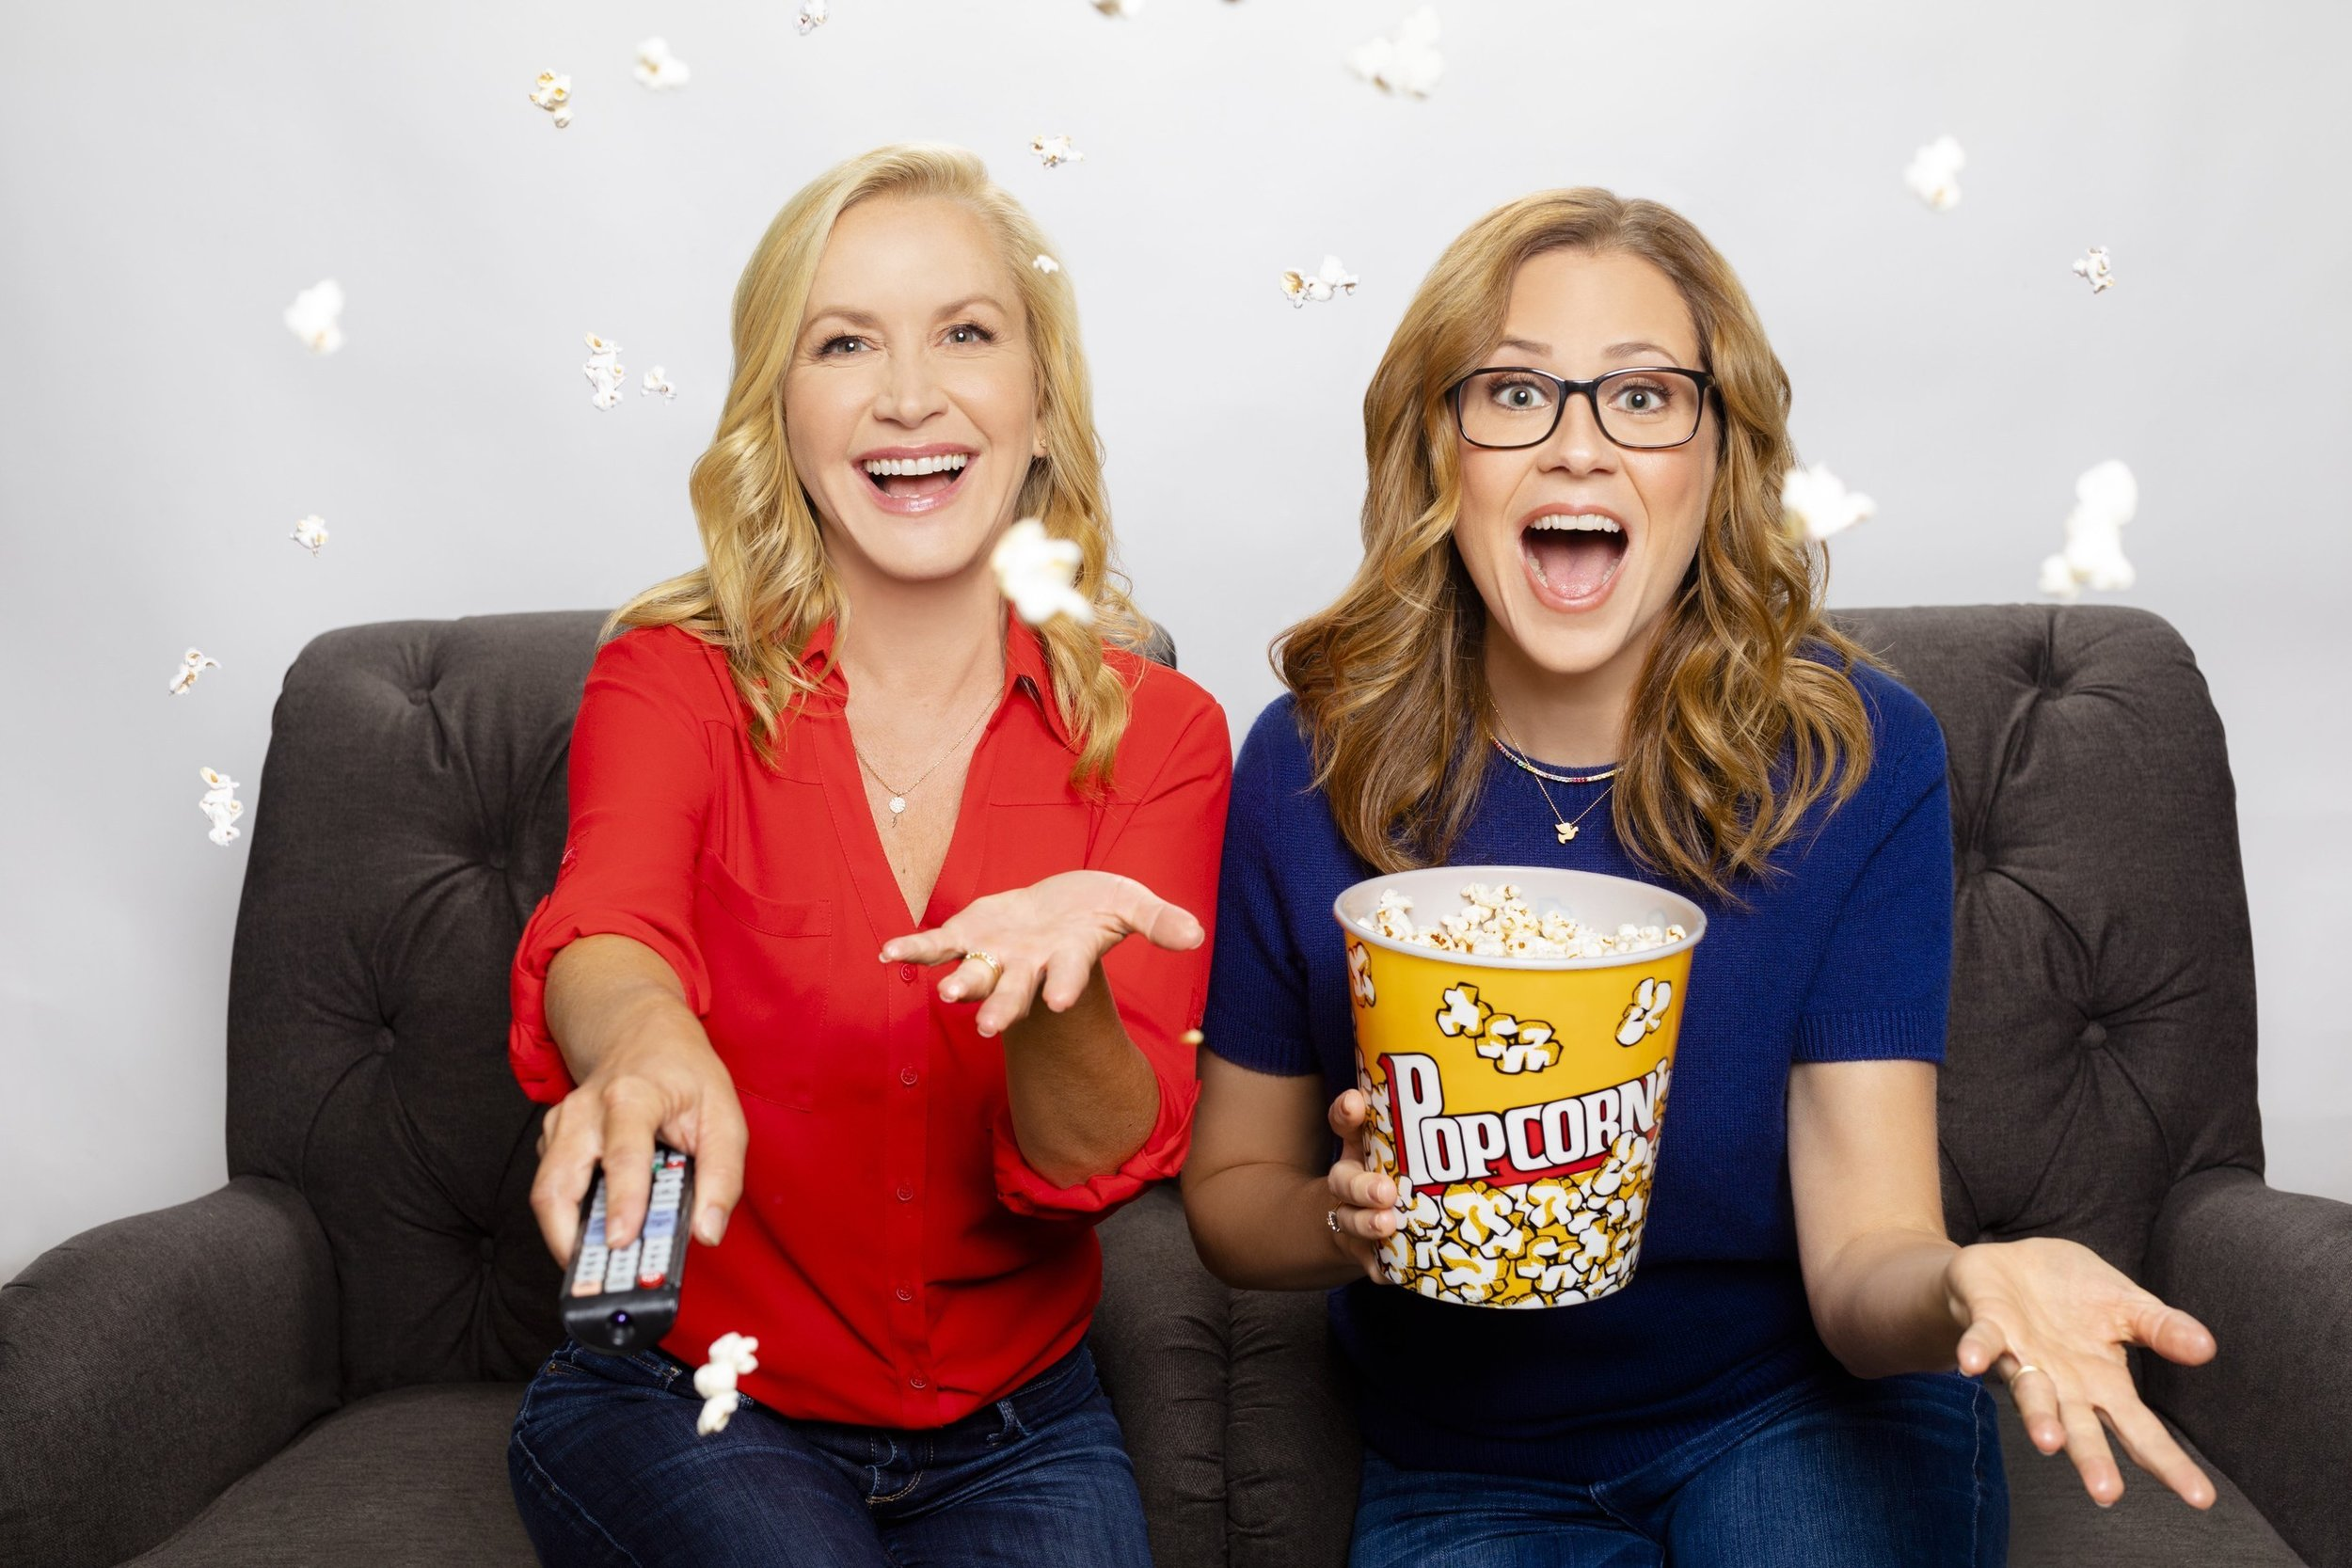 jenna-fischer-and-angela-kinsey-are-launching-a-podcast-about-the-office.jpg